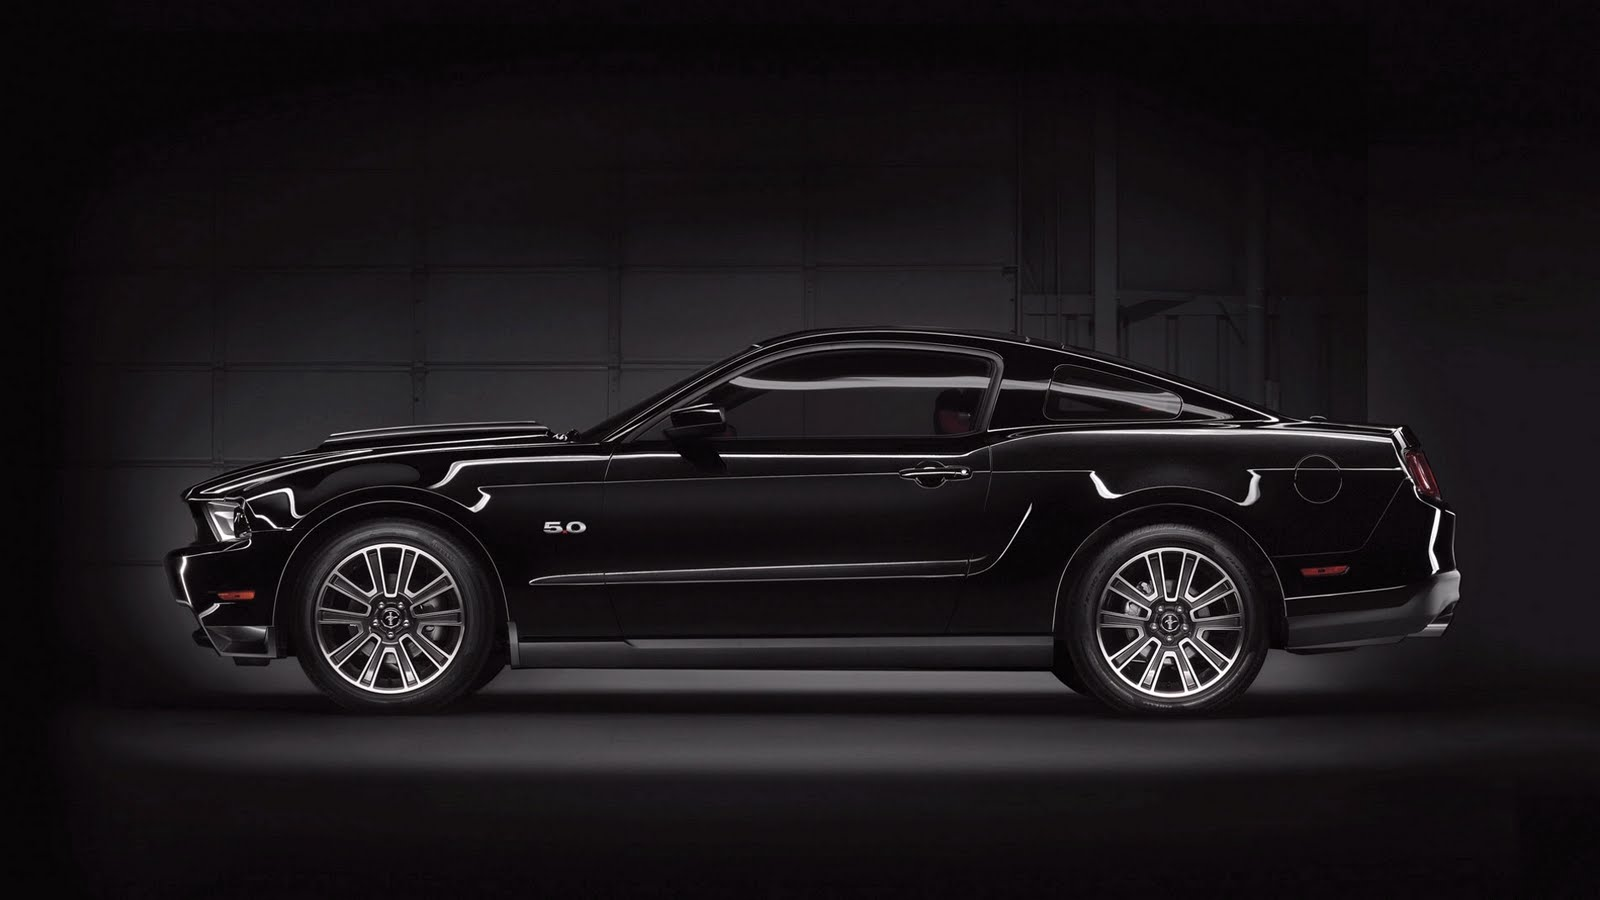 HD Wallpapers Ford Mustang HD Wallpaper   Set 1 1600x900